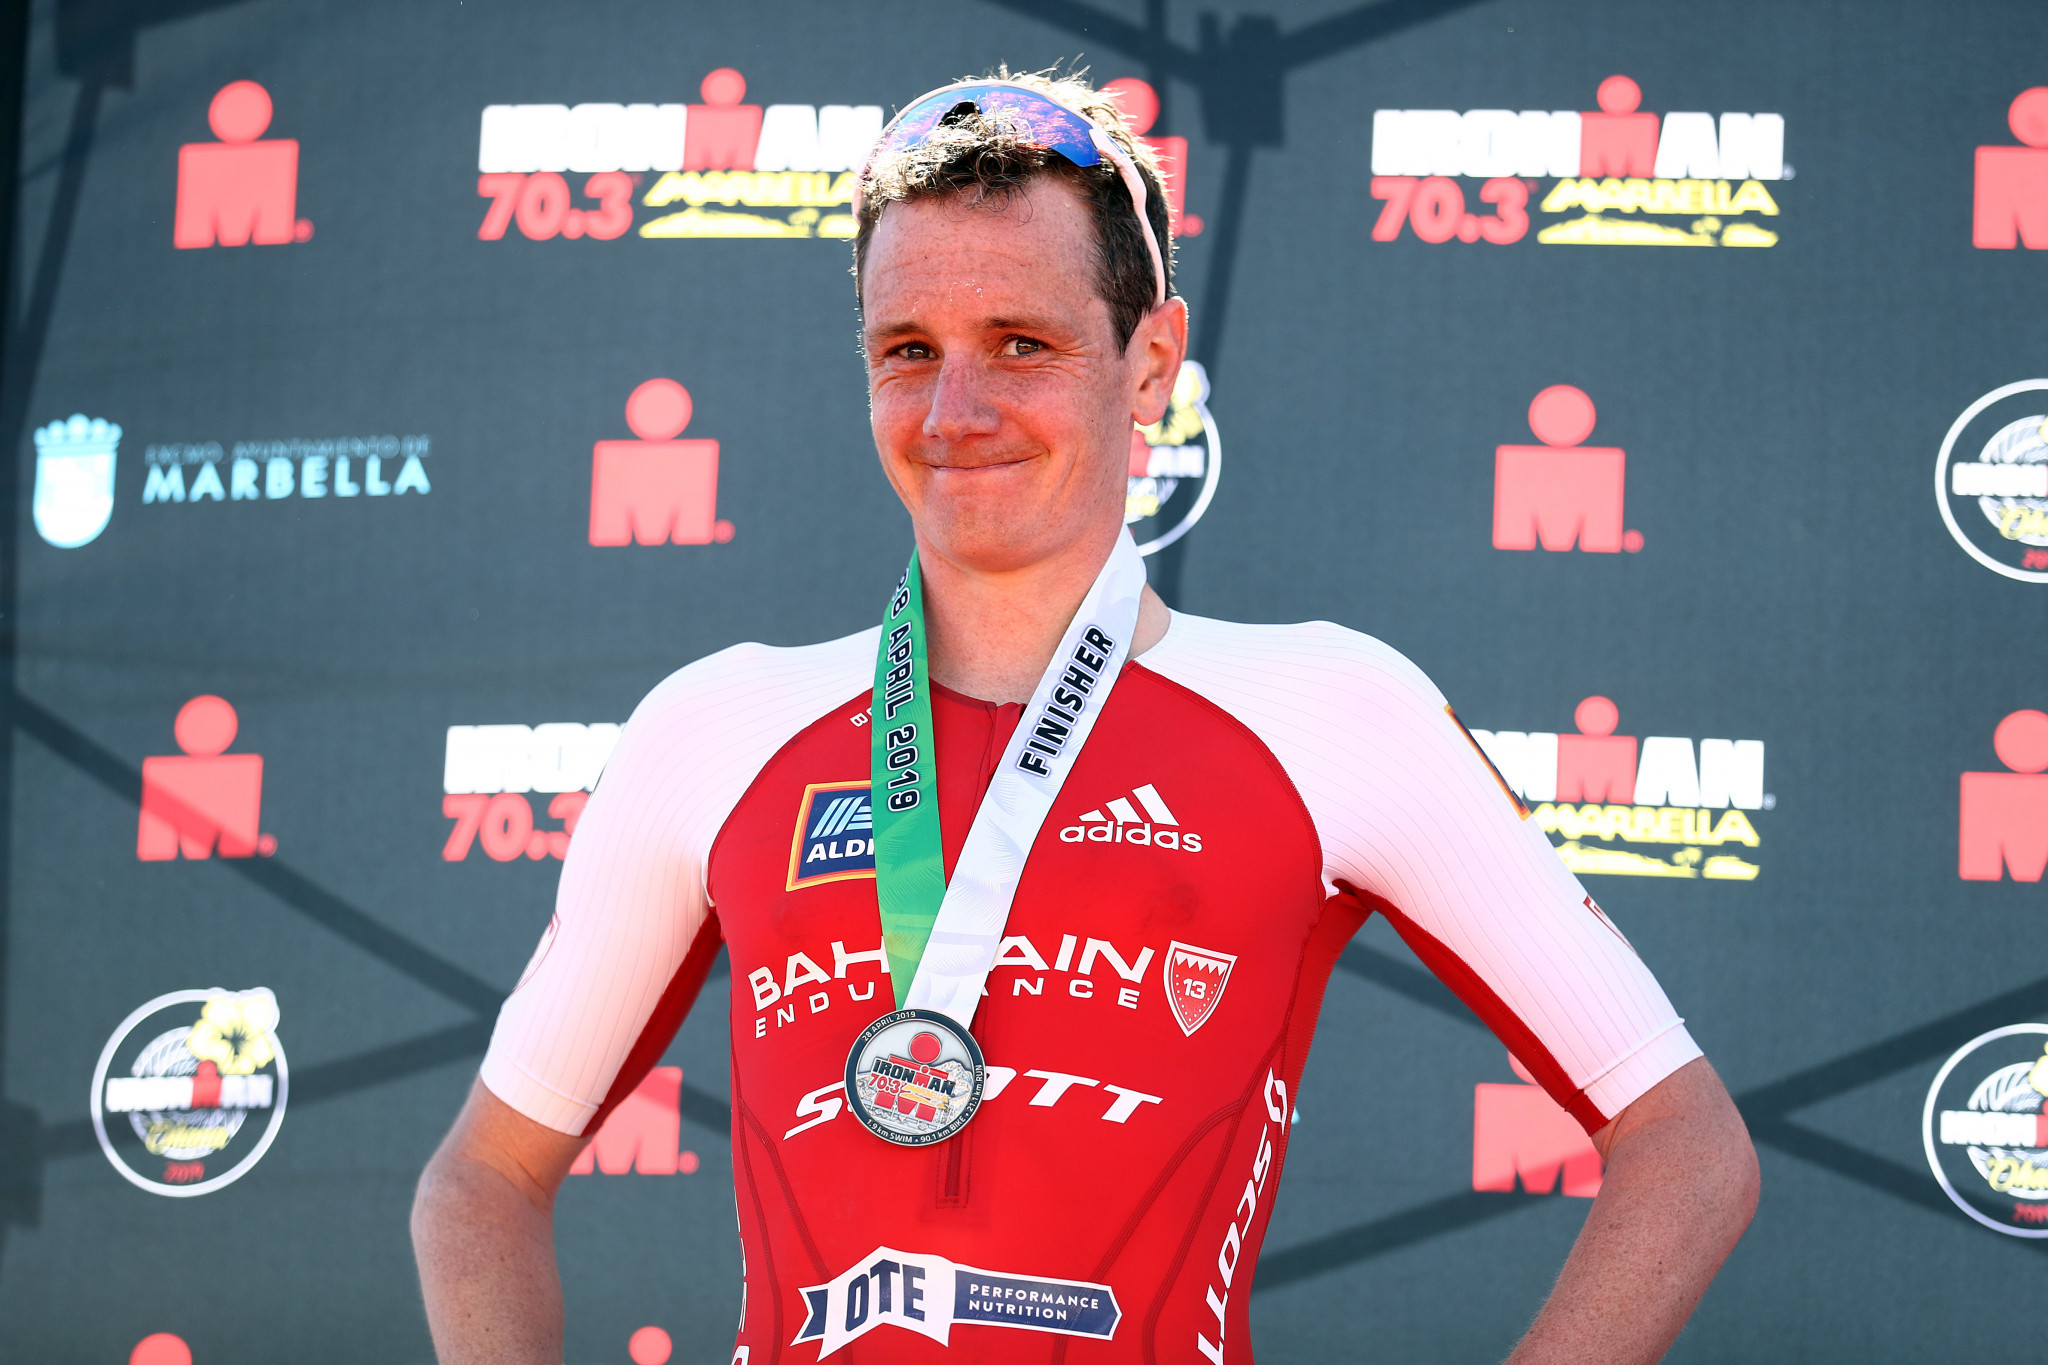 Alistair Brownlee has favourite tag for ETU Triathlon European Championships in the Netherlands